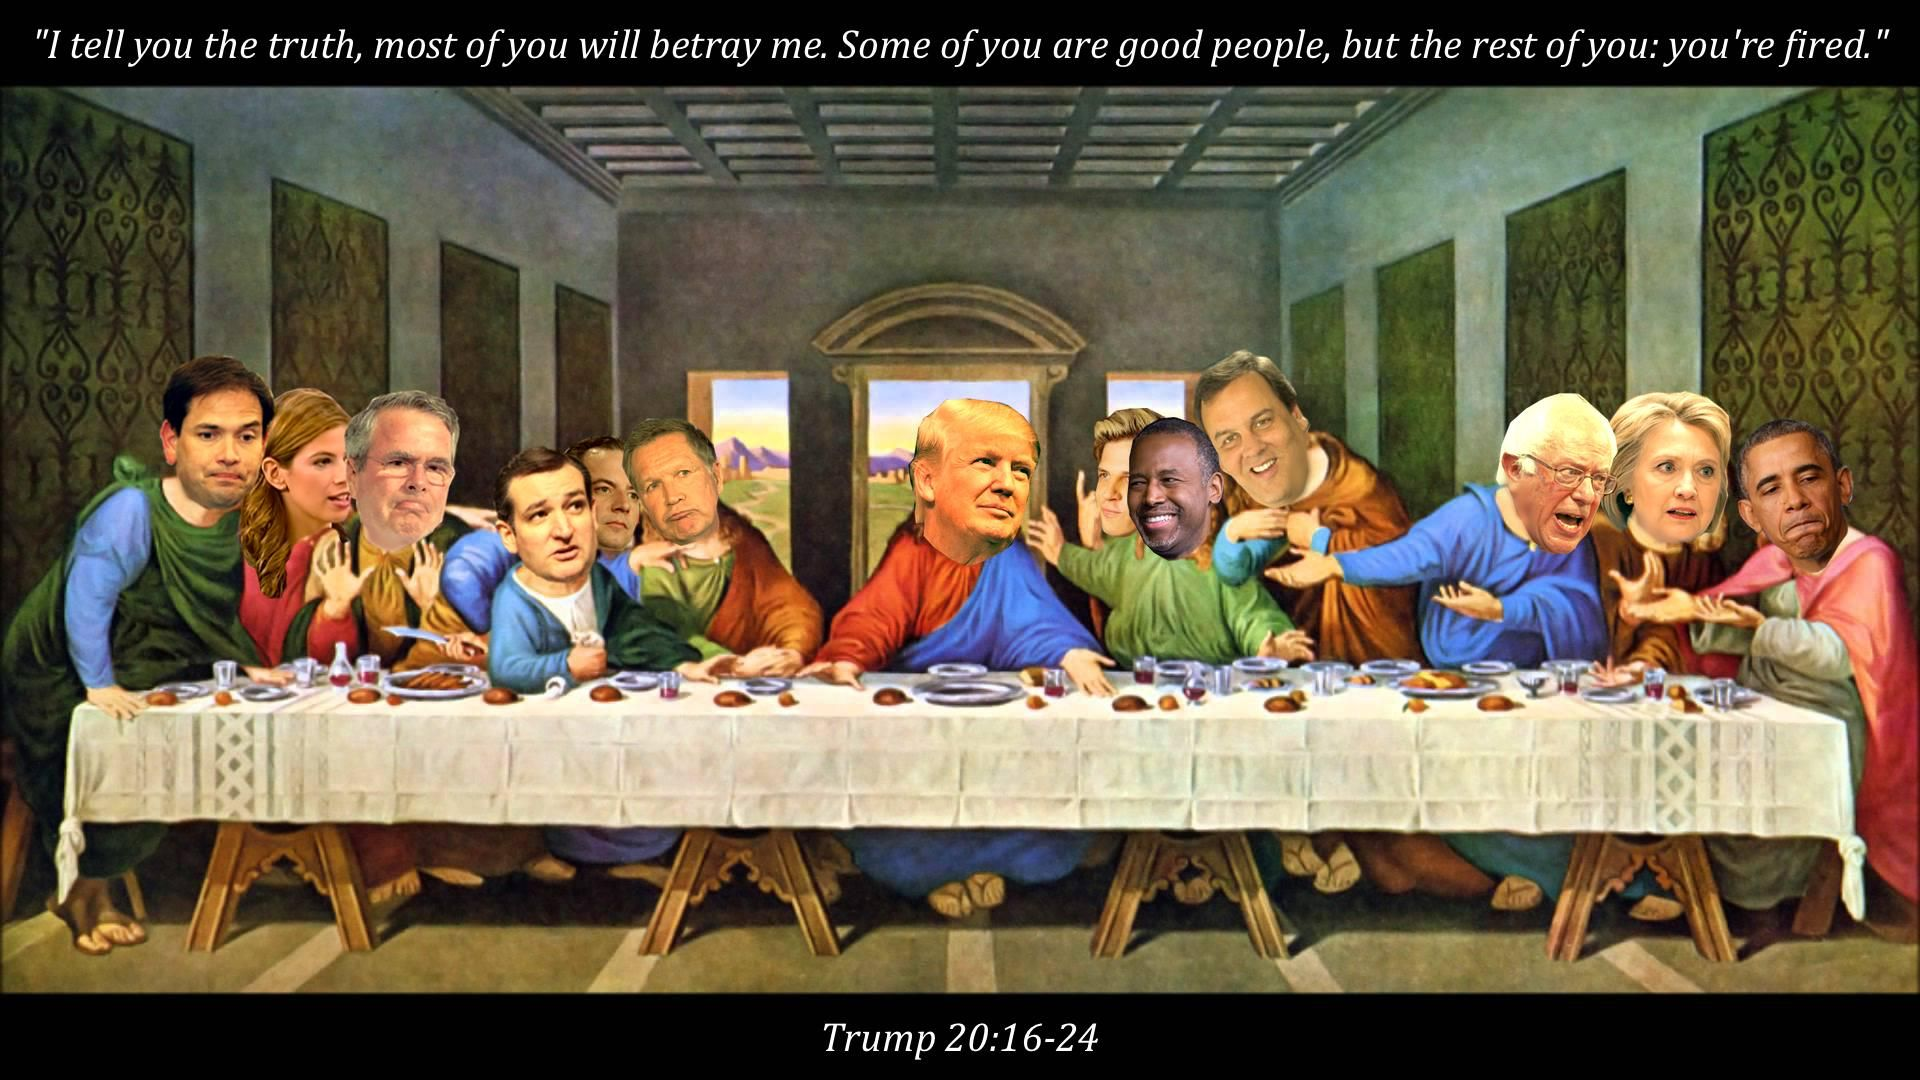 The Gope S Last Supper 1920 X 1080 Need Iphone 6s Plus